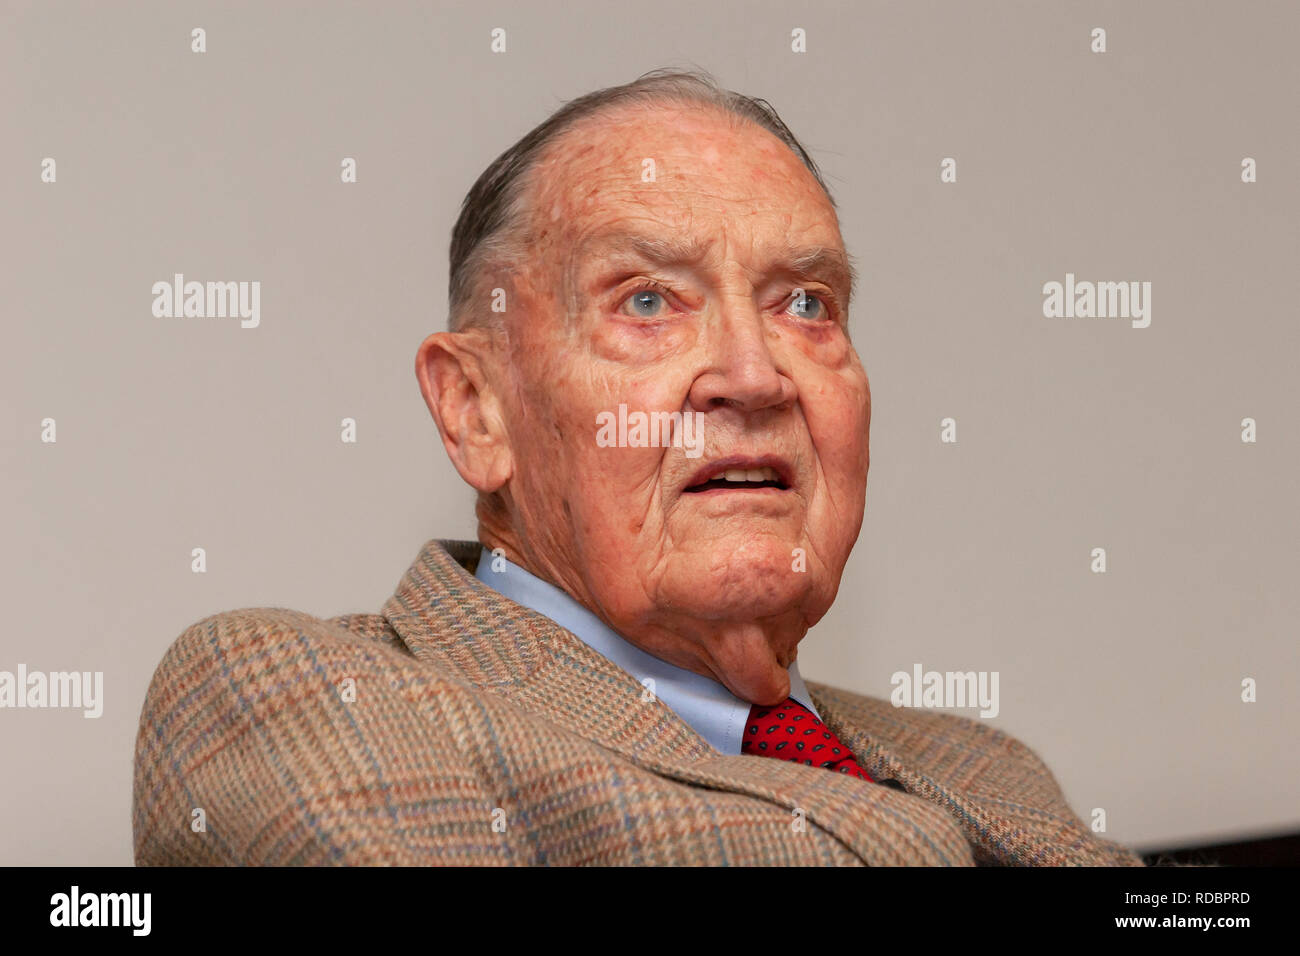 John Bogle (Jack Bogle), the founder of Vanguard Group Inc., a mutual fund investment company. - Stock Image